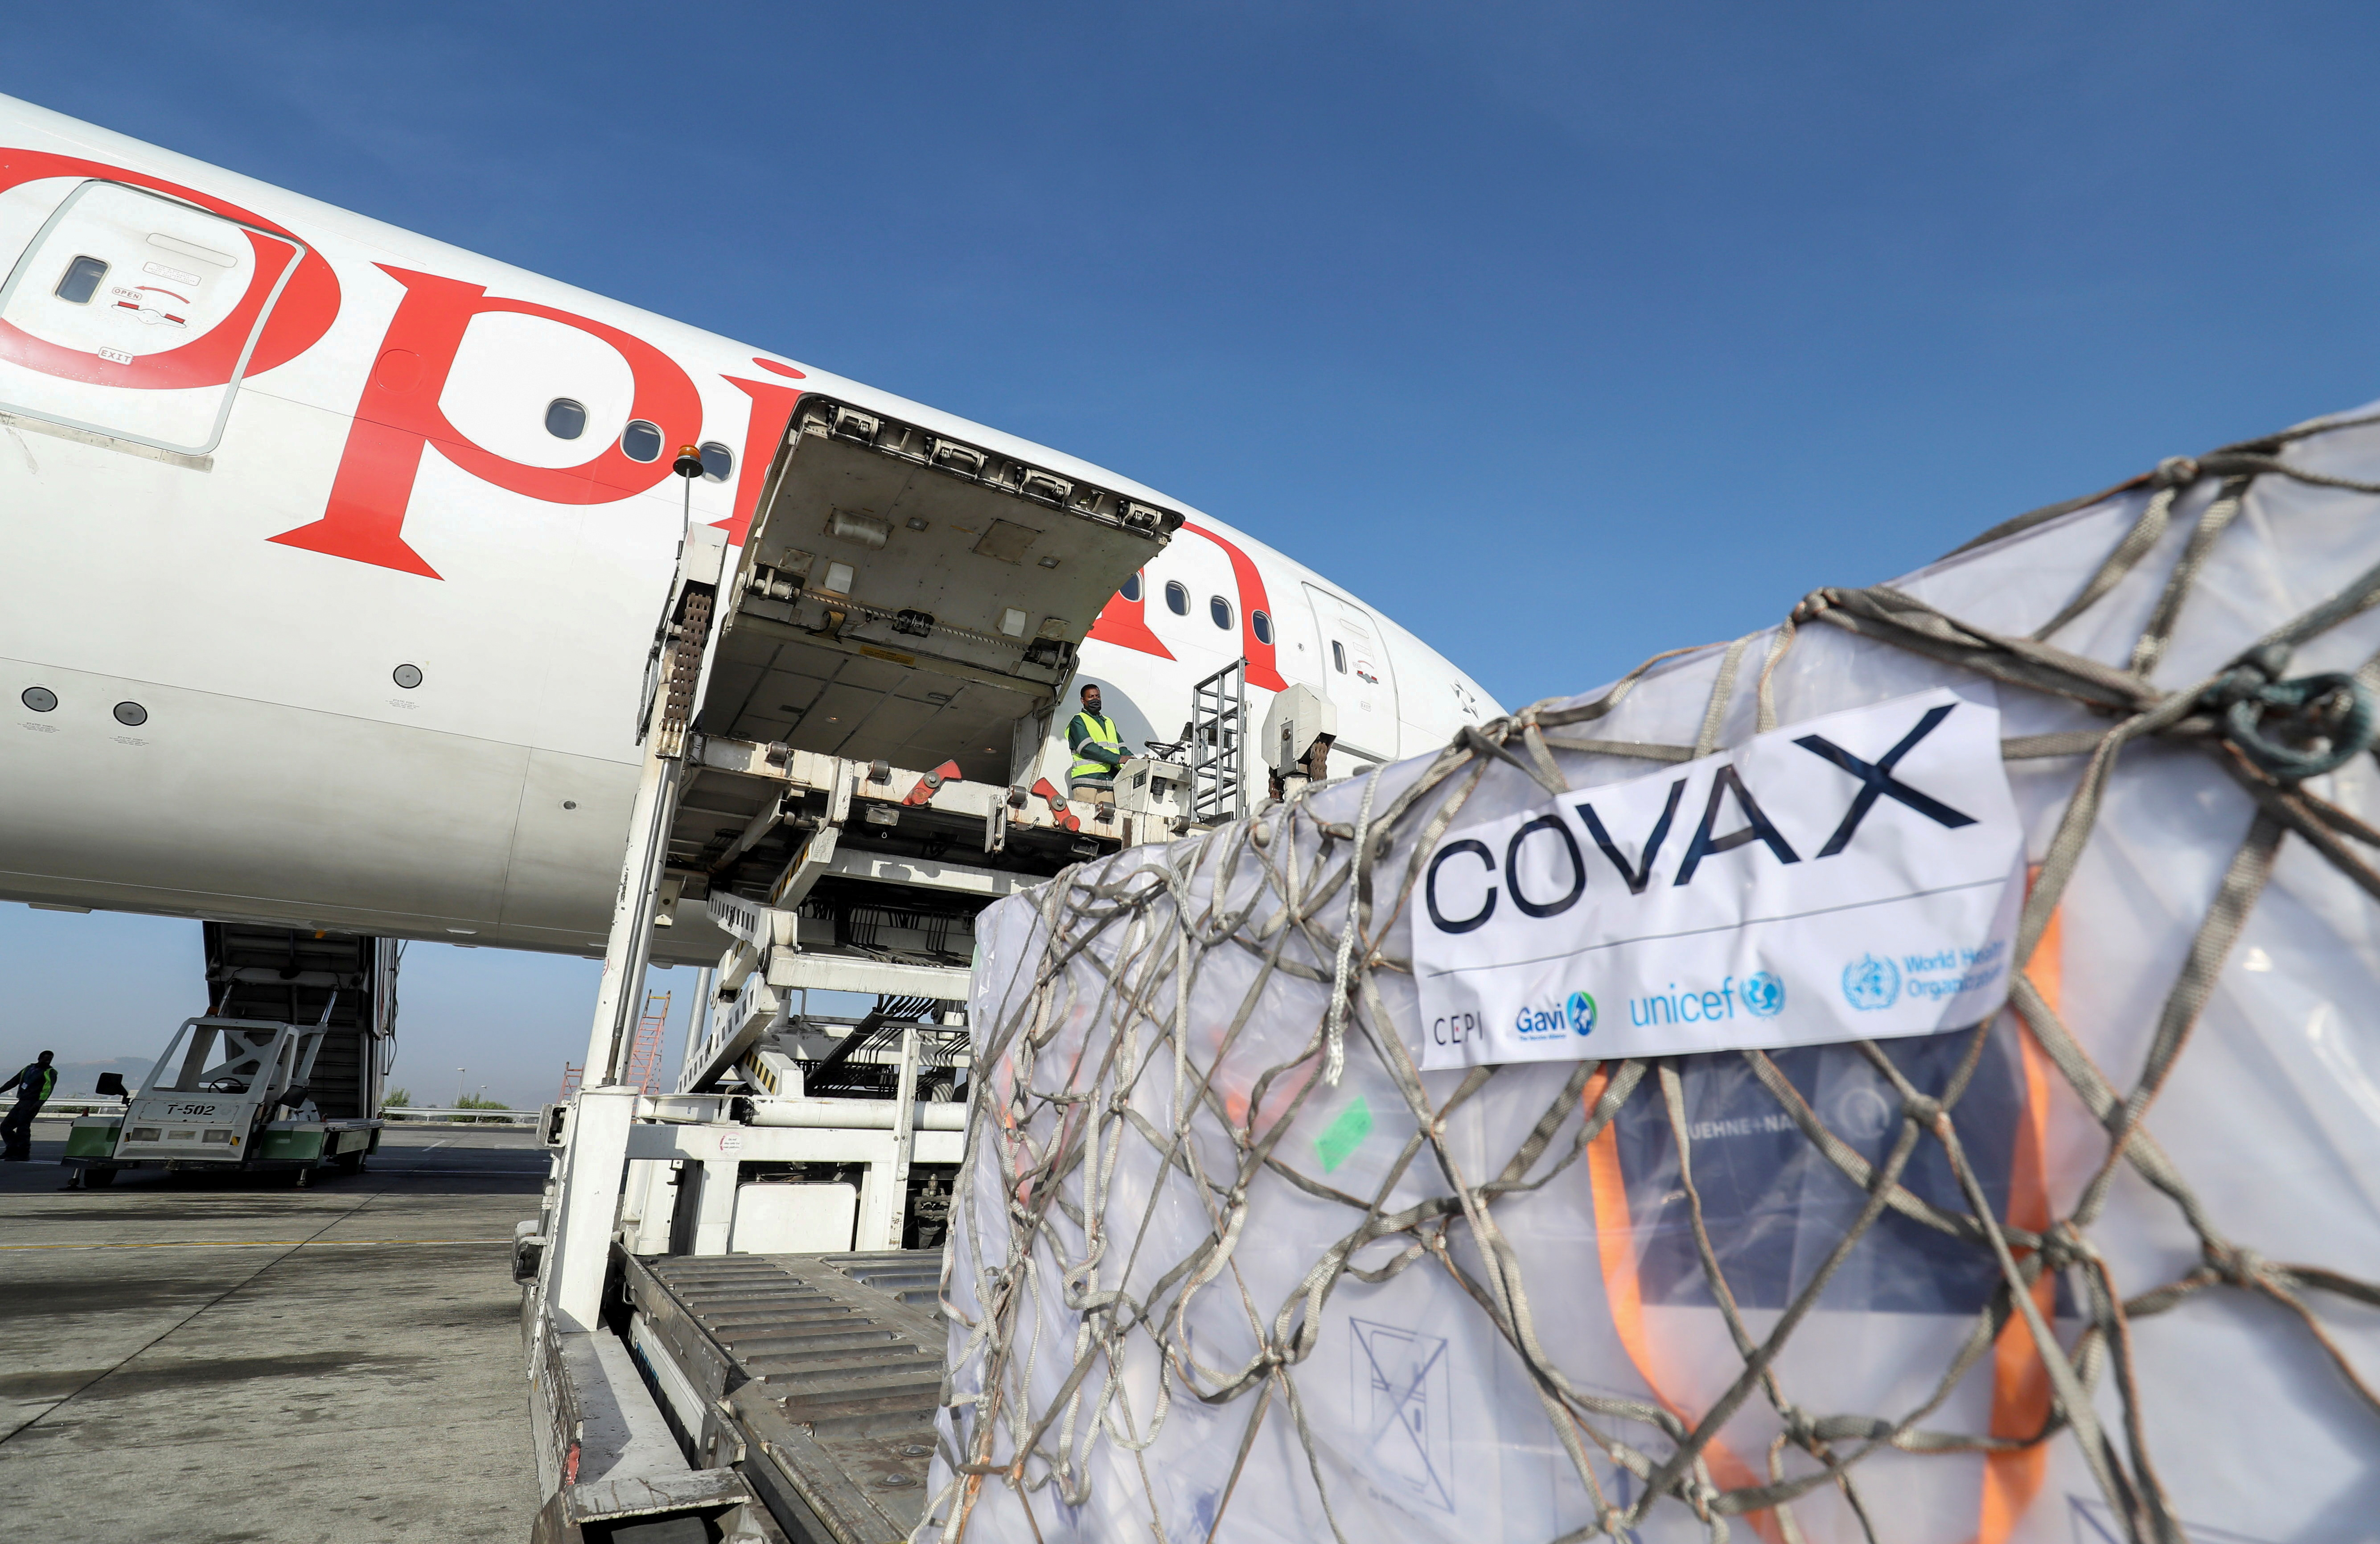 Ethiopian Airlines staff unload AstraZeneca/Oxford vaccines under the COVAX scheme against the coronavirus disease (COVID-19) from a cargo plane at Bole International Airport in Addis Ababa, Ethiopia, March 7, 2021. REUTERS/Tiksa Negeri/File Photo